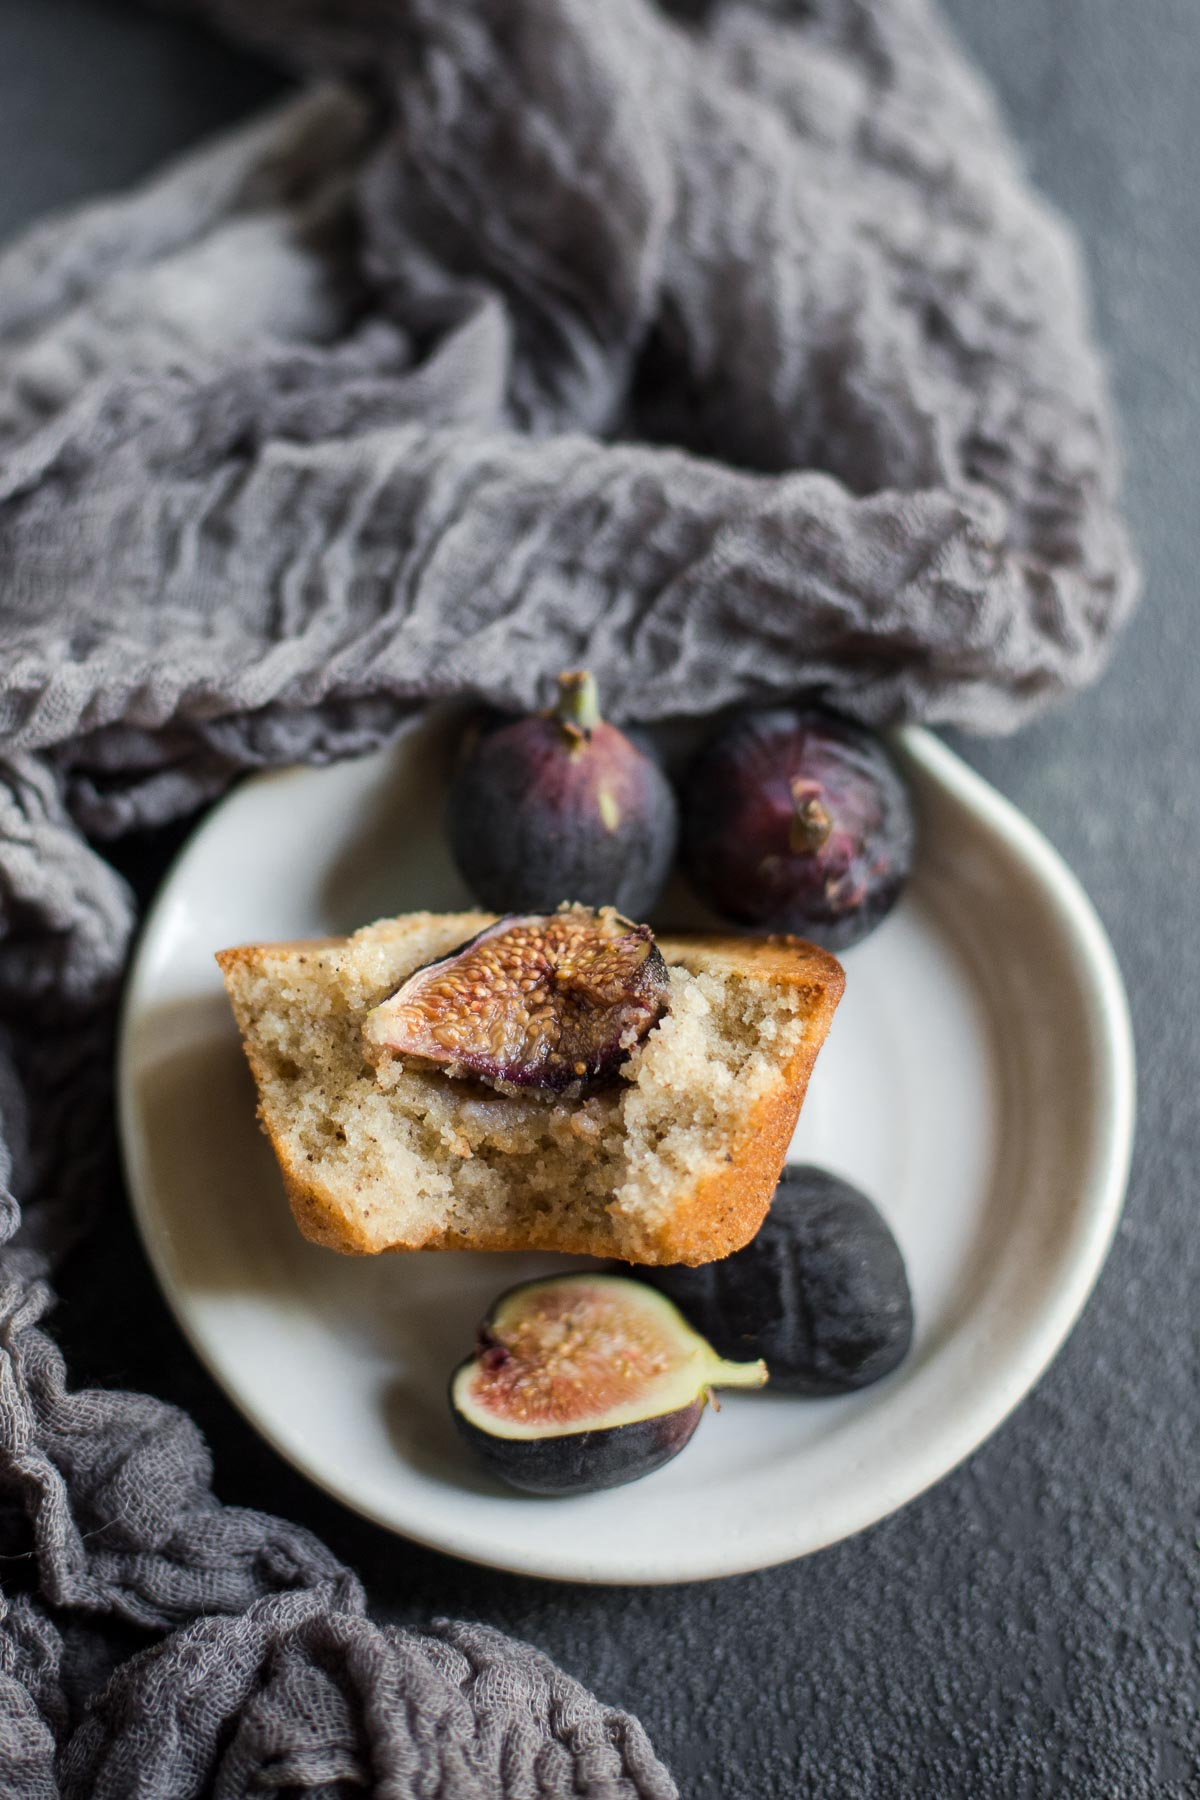 Gluten-free Financiers with Figs made with brown butter and almond flour (Grain free)